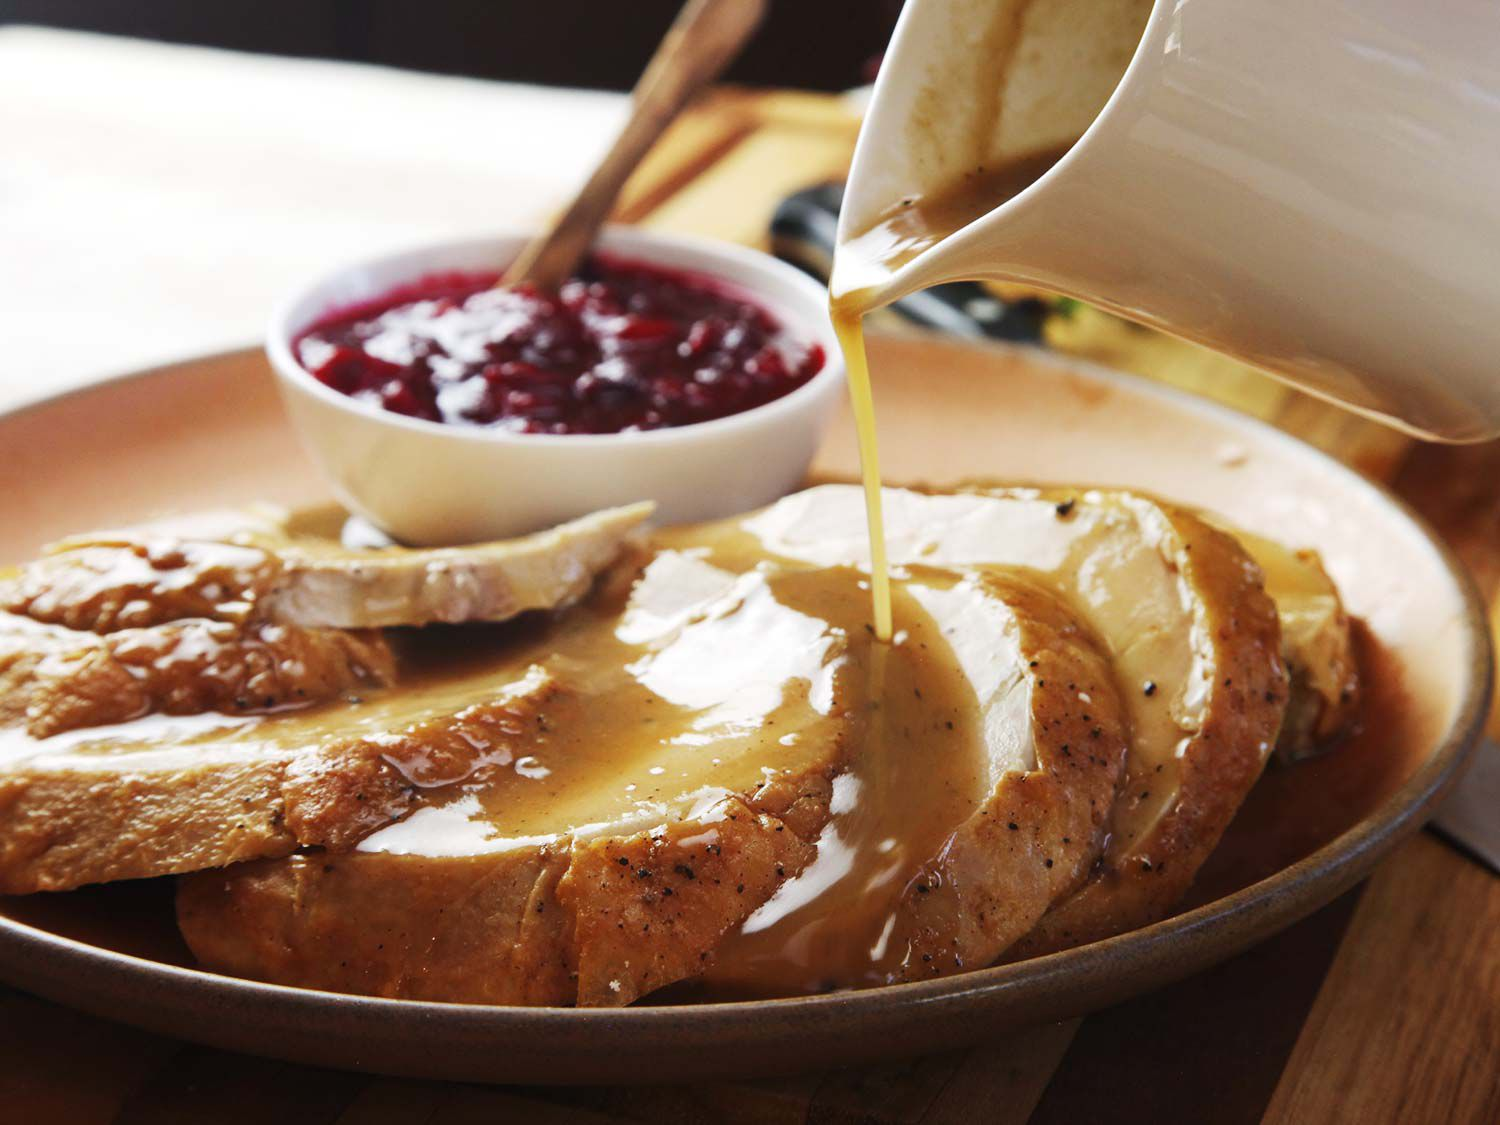 Pouring gravy from a pitcher over a platter of sliced roasted turkey breast meat, with a bowl of cranberry sauce in the background.